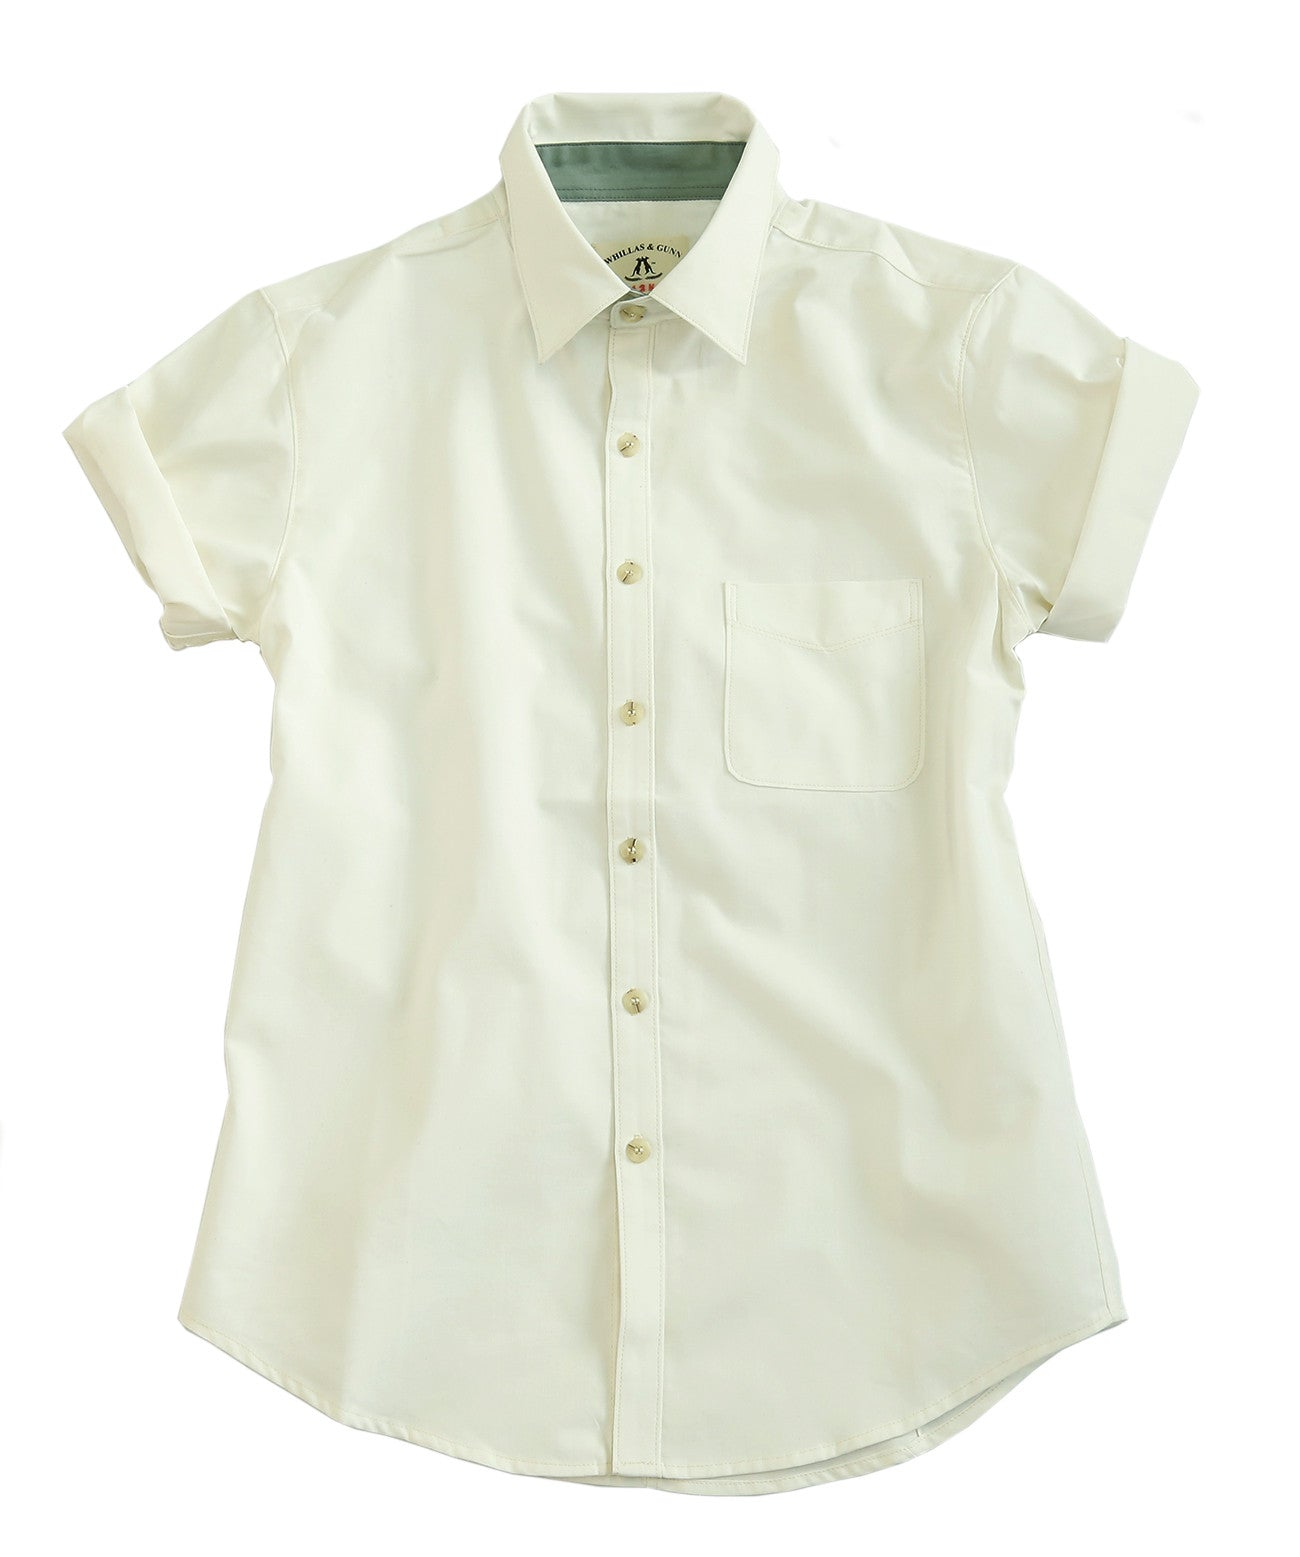 Short sleeve summer | Leisure men's shirt | Narrow collar in pink and white - OUT OF AUSTRALIA | Kakadu Traders Australia